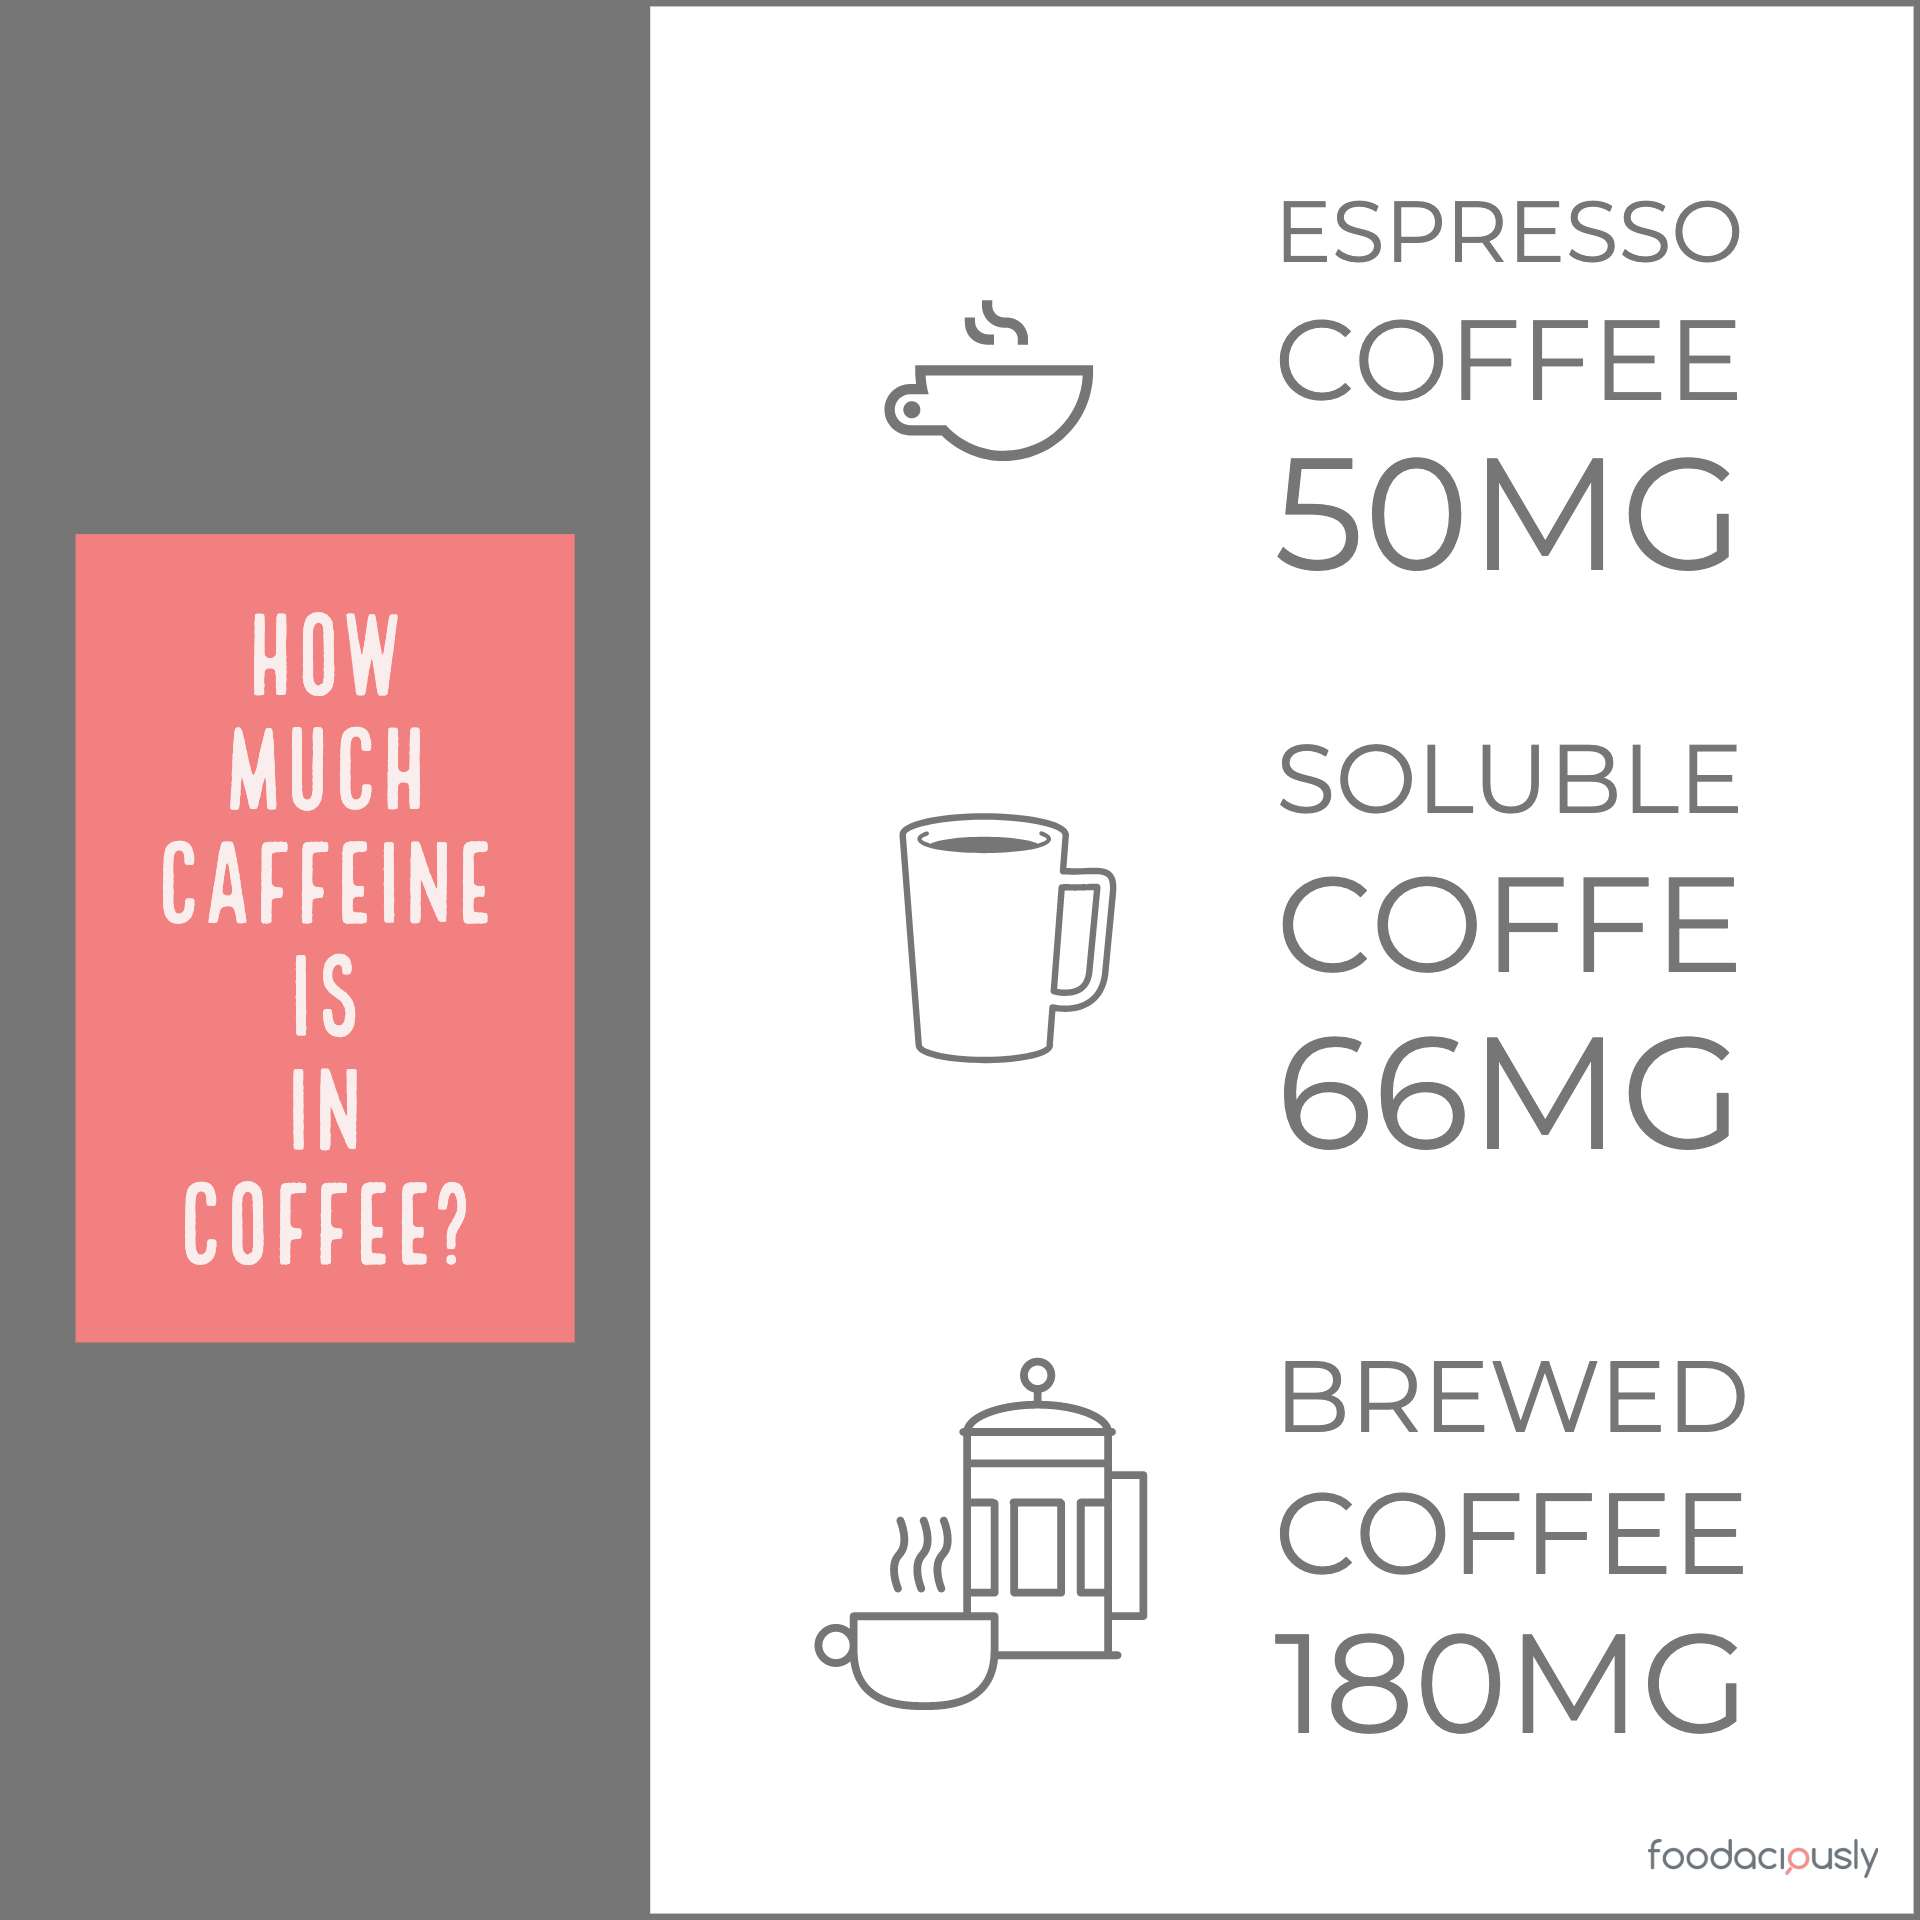 How Much Caffeine is in Coffee?